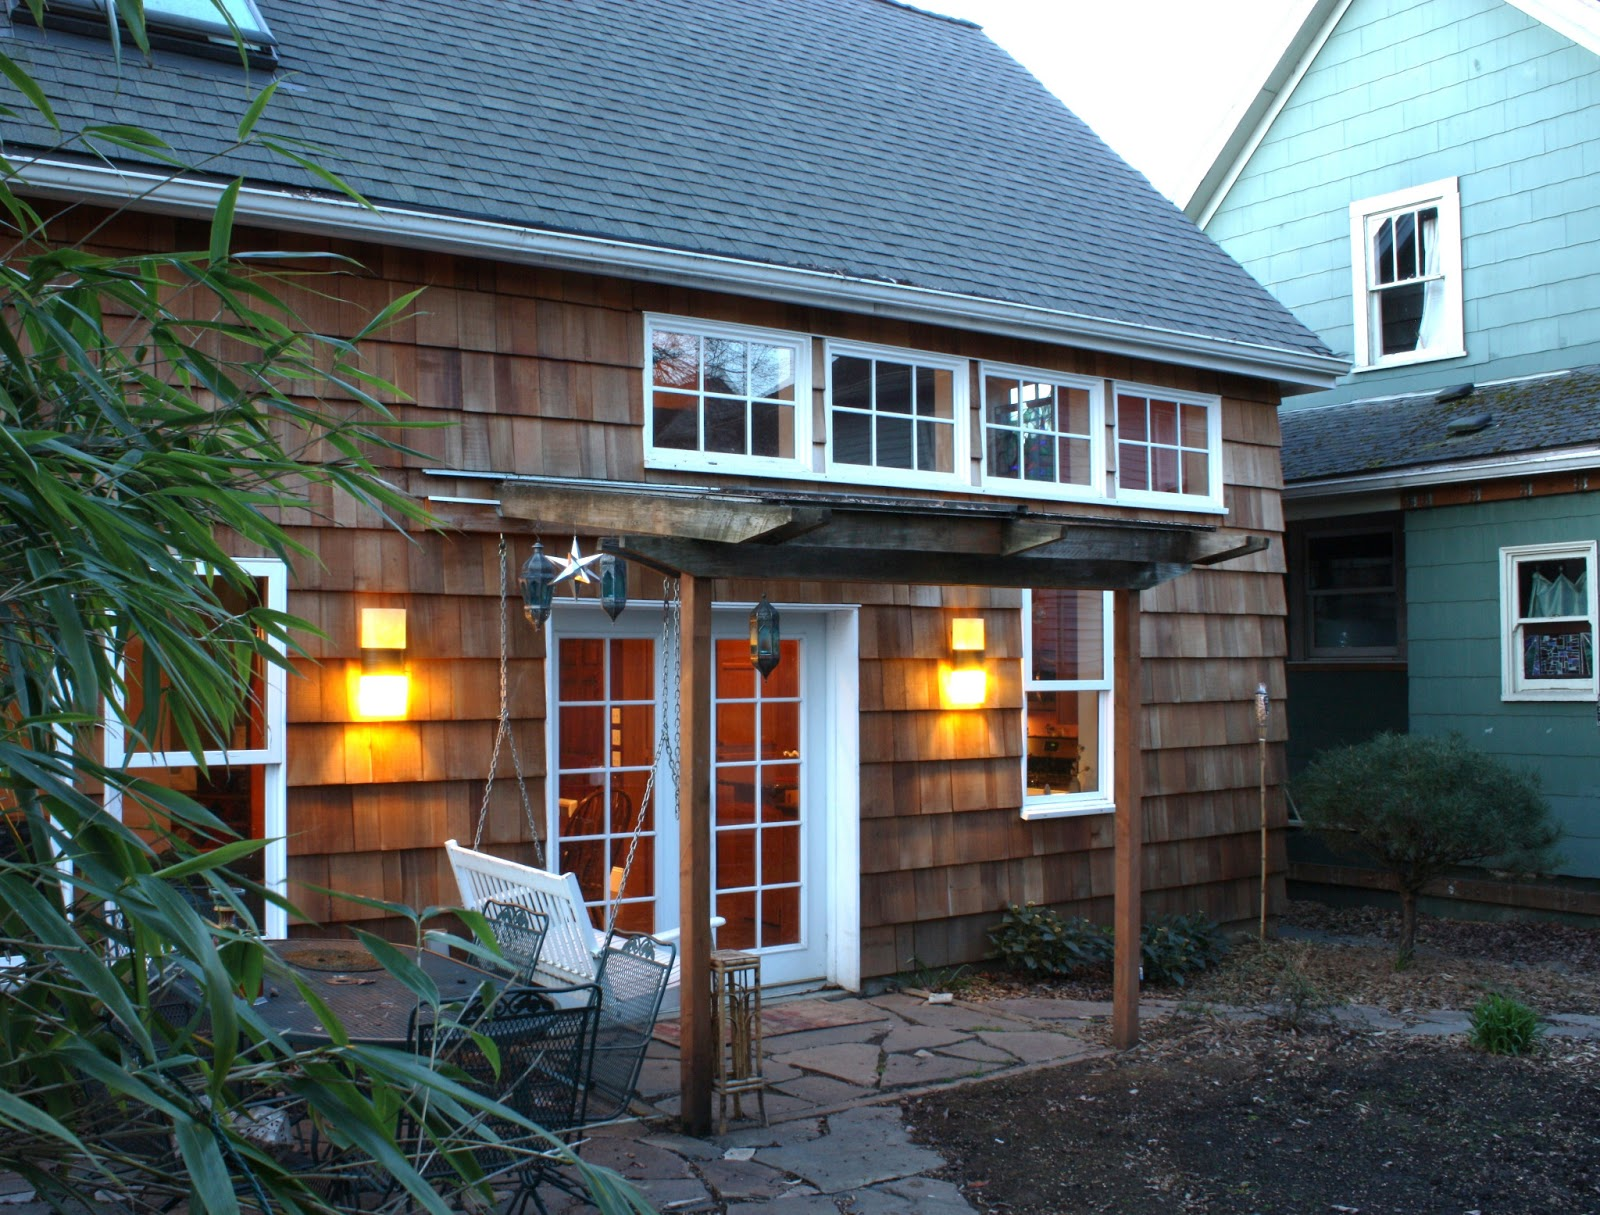 This Shingled Backyard Cottage Has 1 Bedroom And A Small Office In 799 Sq  Ft.